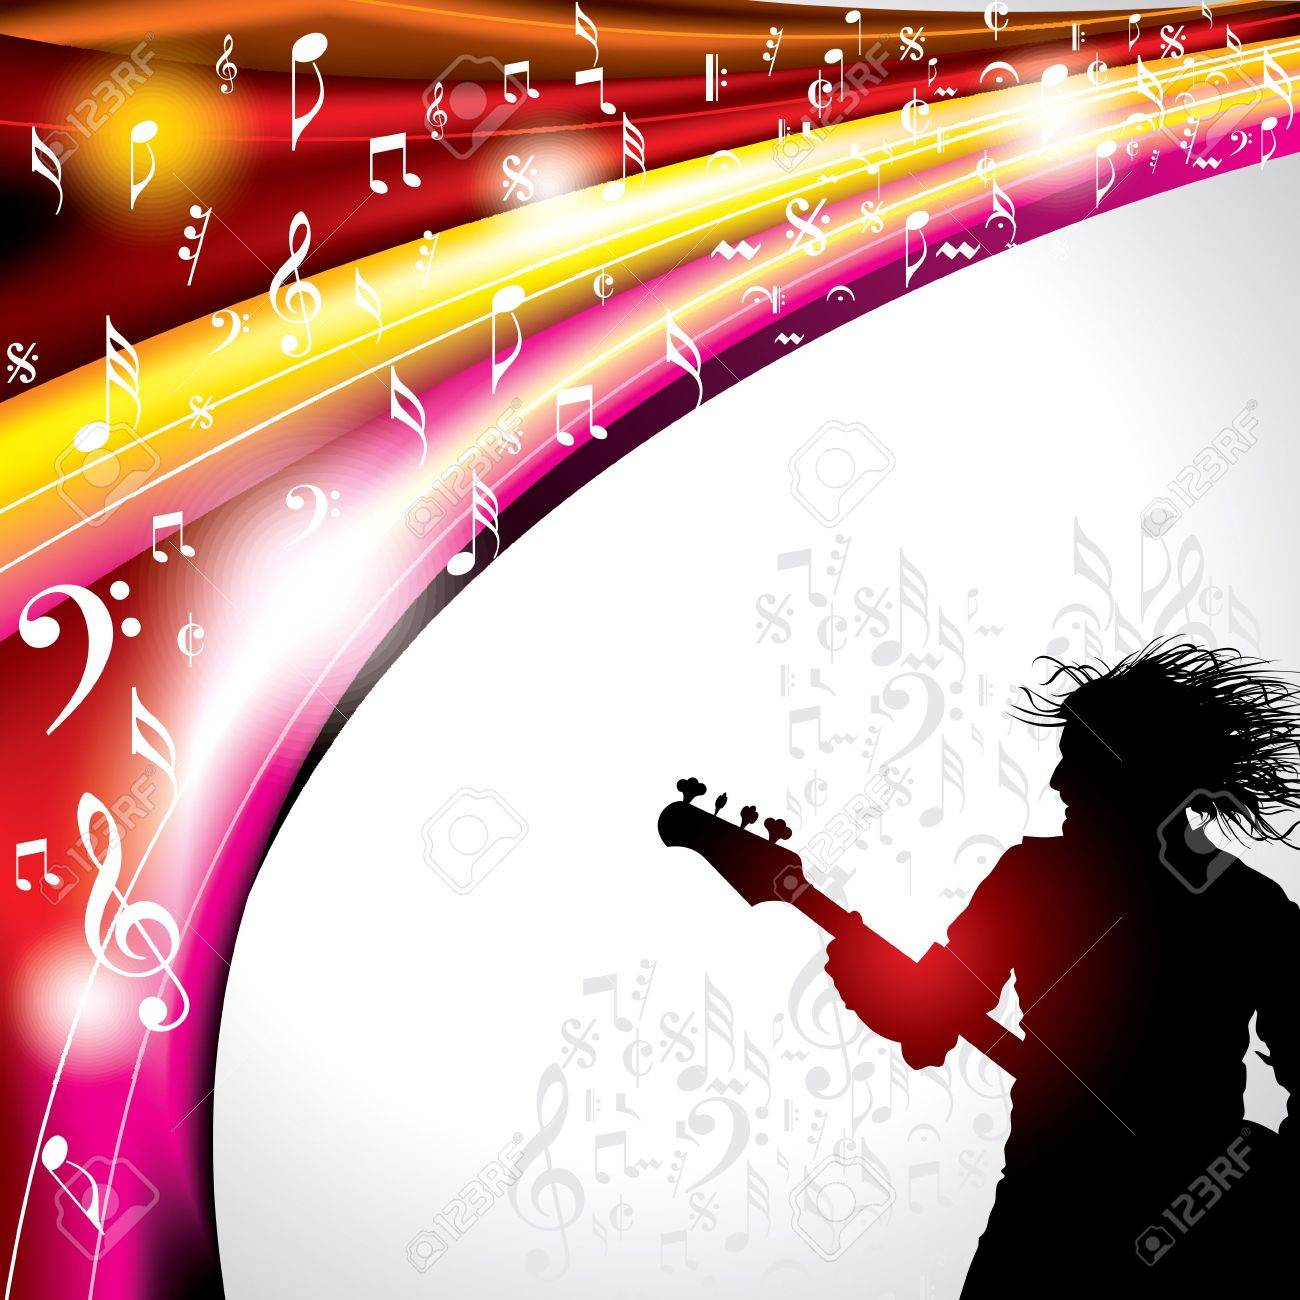 Abstract musical background with music event design Stock Vector - 19466802